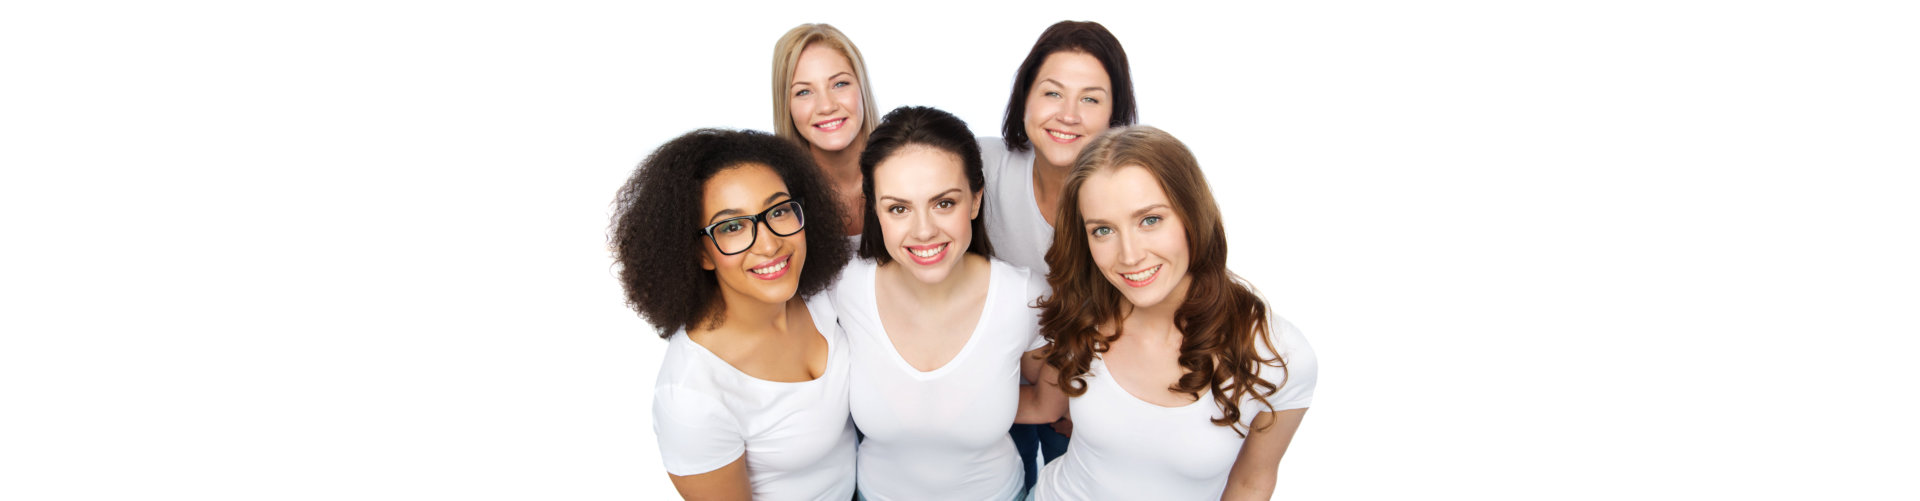 Group of happy different women in white t-shirts. Copy, people.